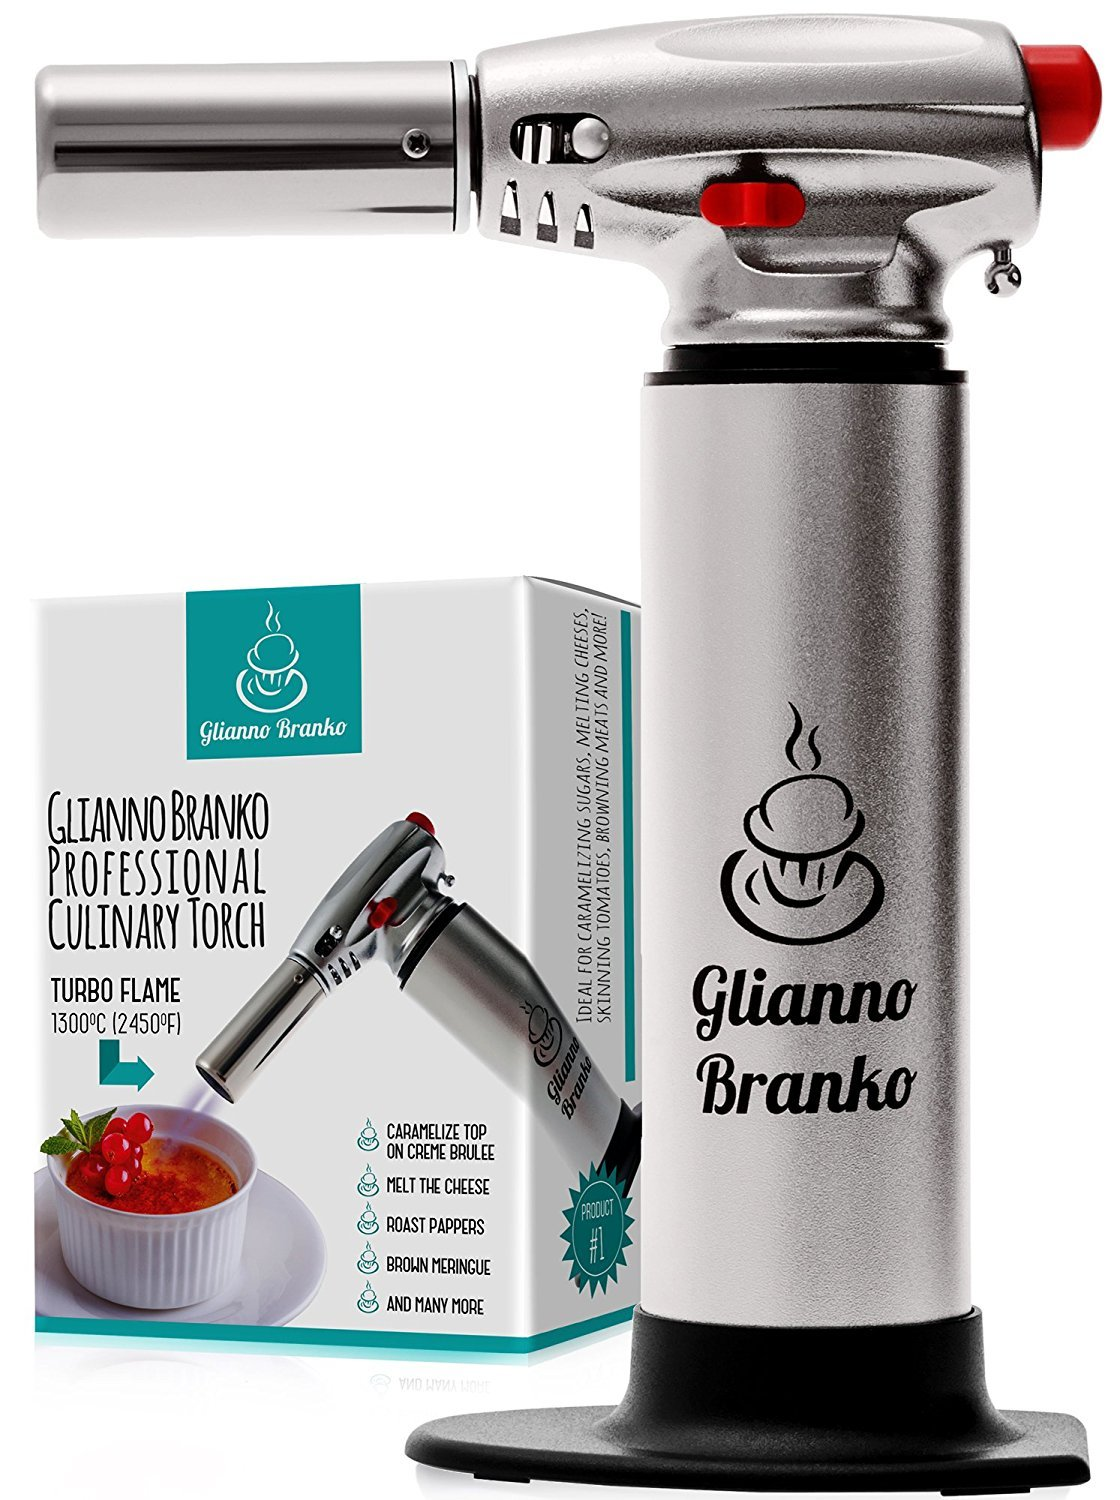 Blow Torch - Crème Brulee Torch - Best Butane Torch Lighter - Culinary Torch - Kitchen Torch - Cooking Torch - Chef Torch - Food Torch with Safety Lock Adjustable Flame - Kitchen Gifts For Woman Man